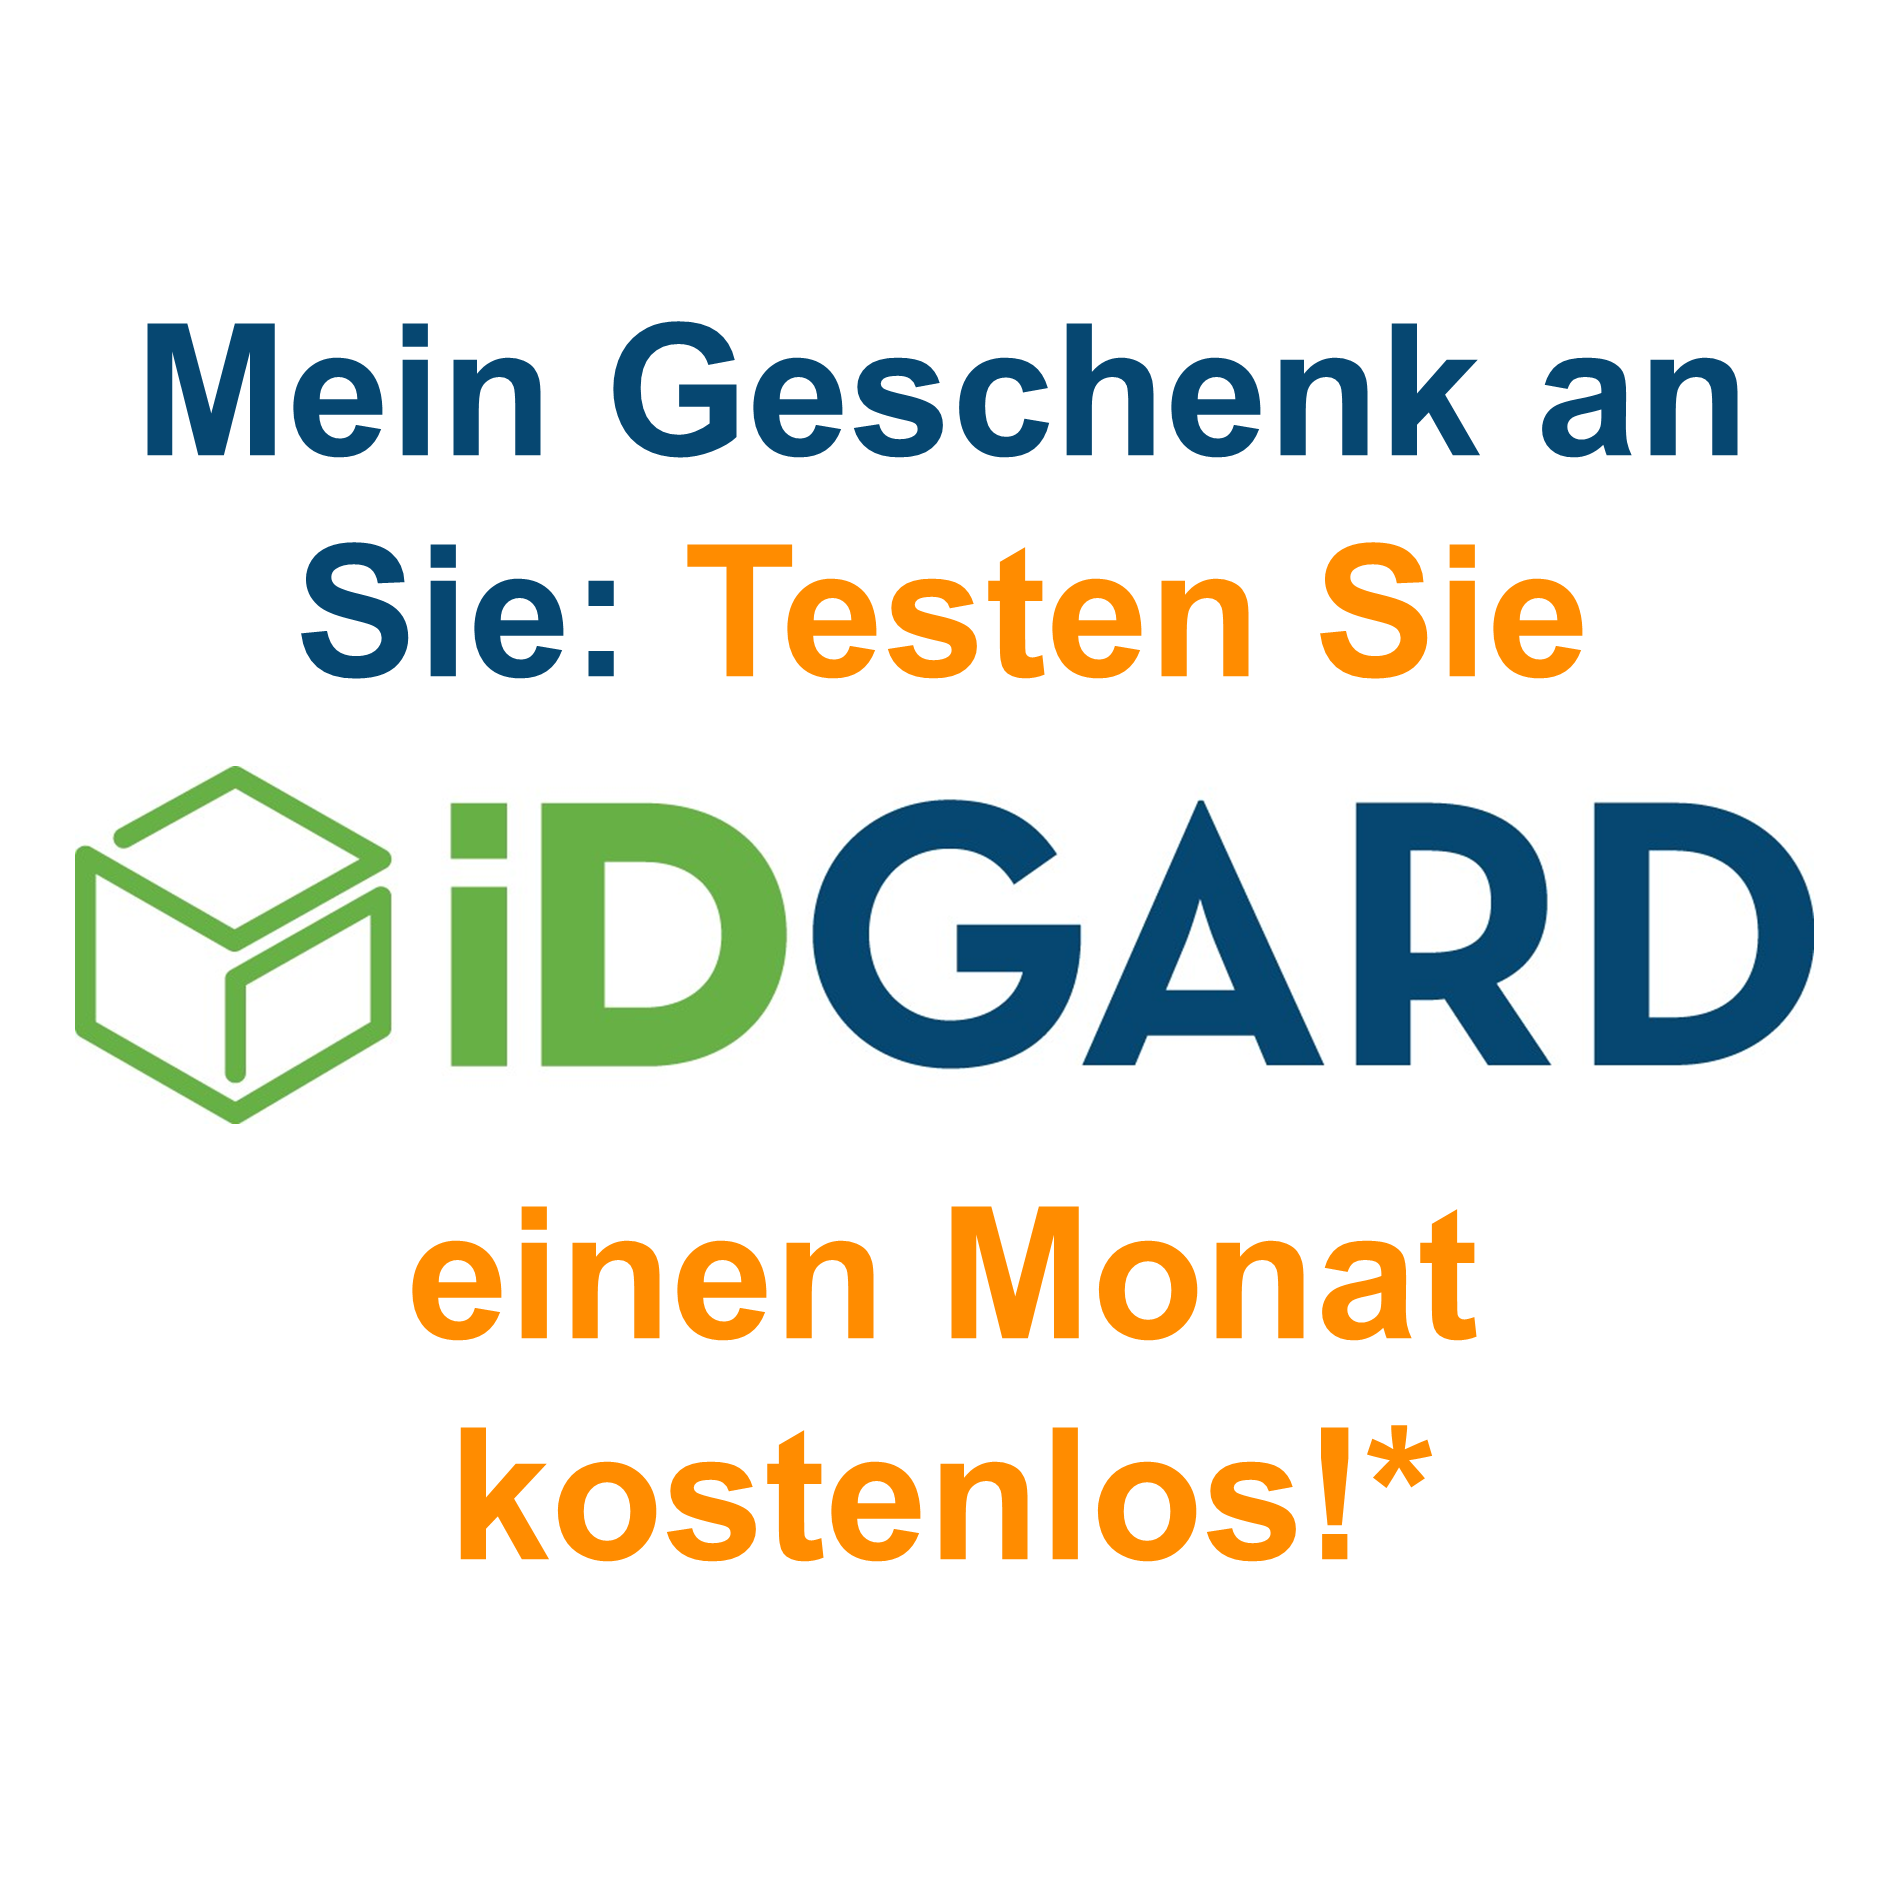 Claus Michael Sattler - iDGARD, die sichere Cloud-Storage-Lösung